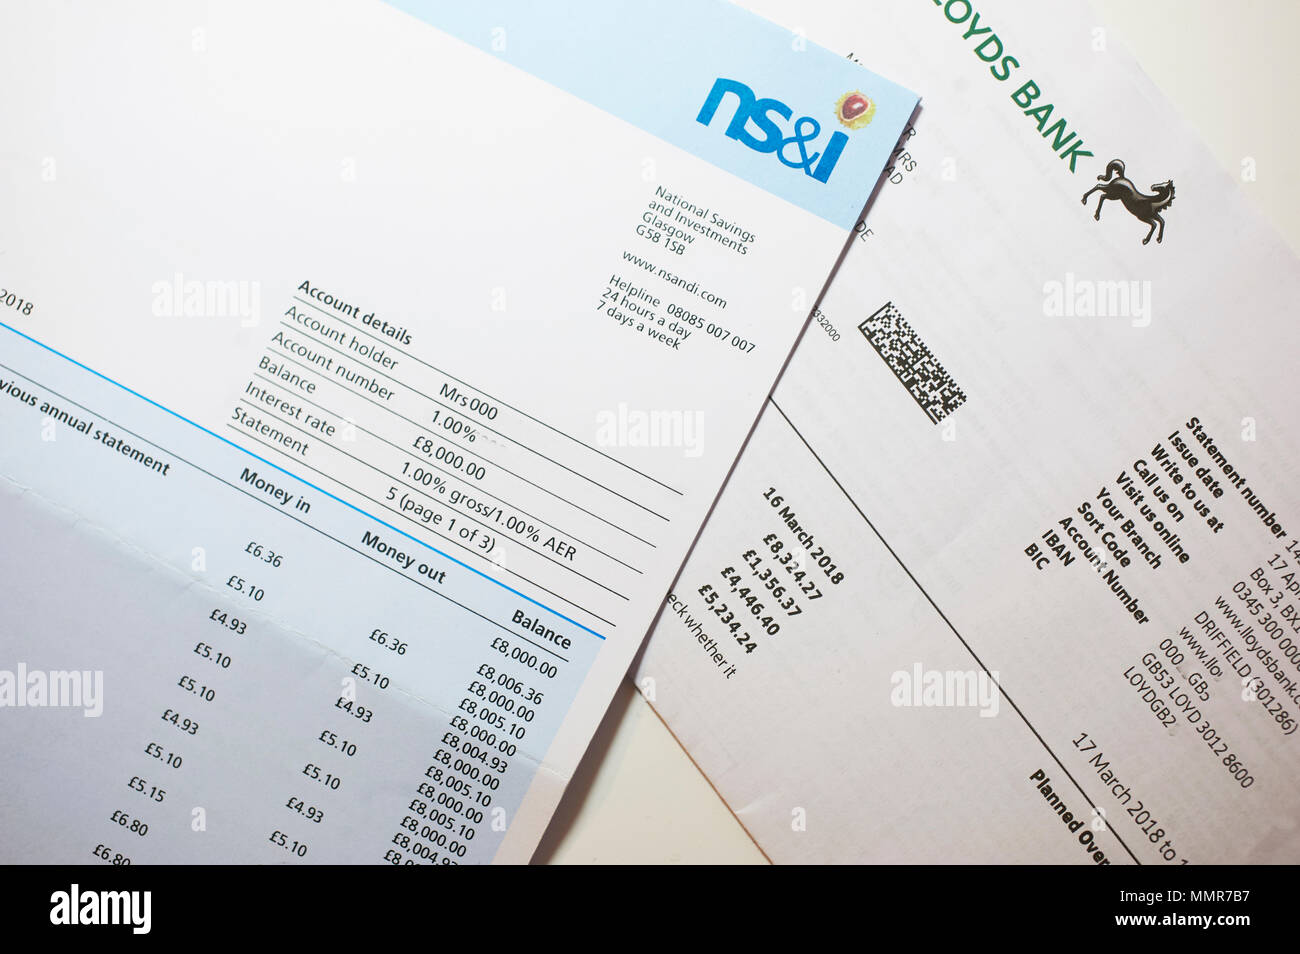 NS&I and Lloyds Bank Statements showing investments on a wooden desk top. - Stock Image